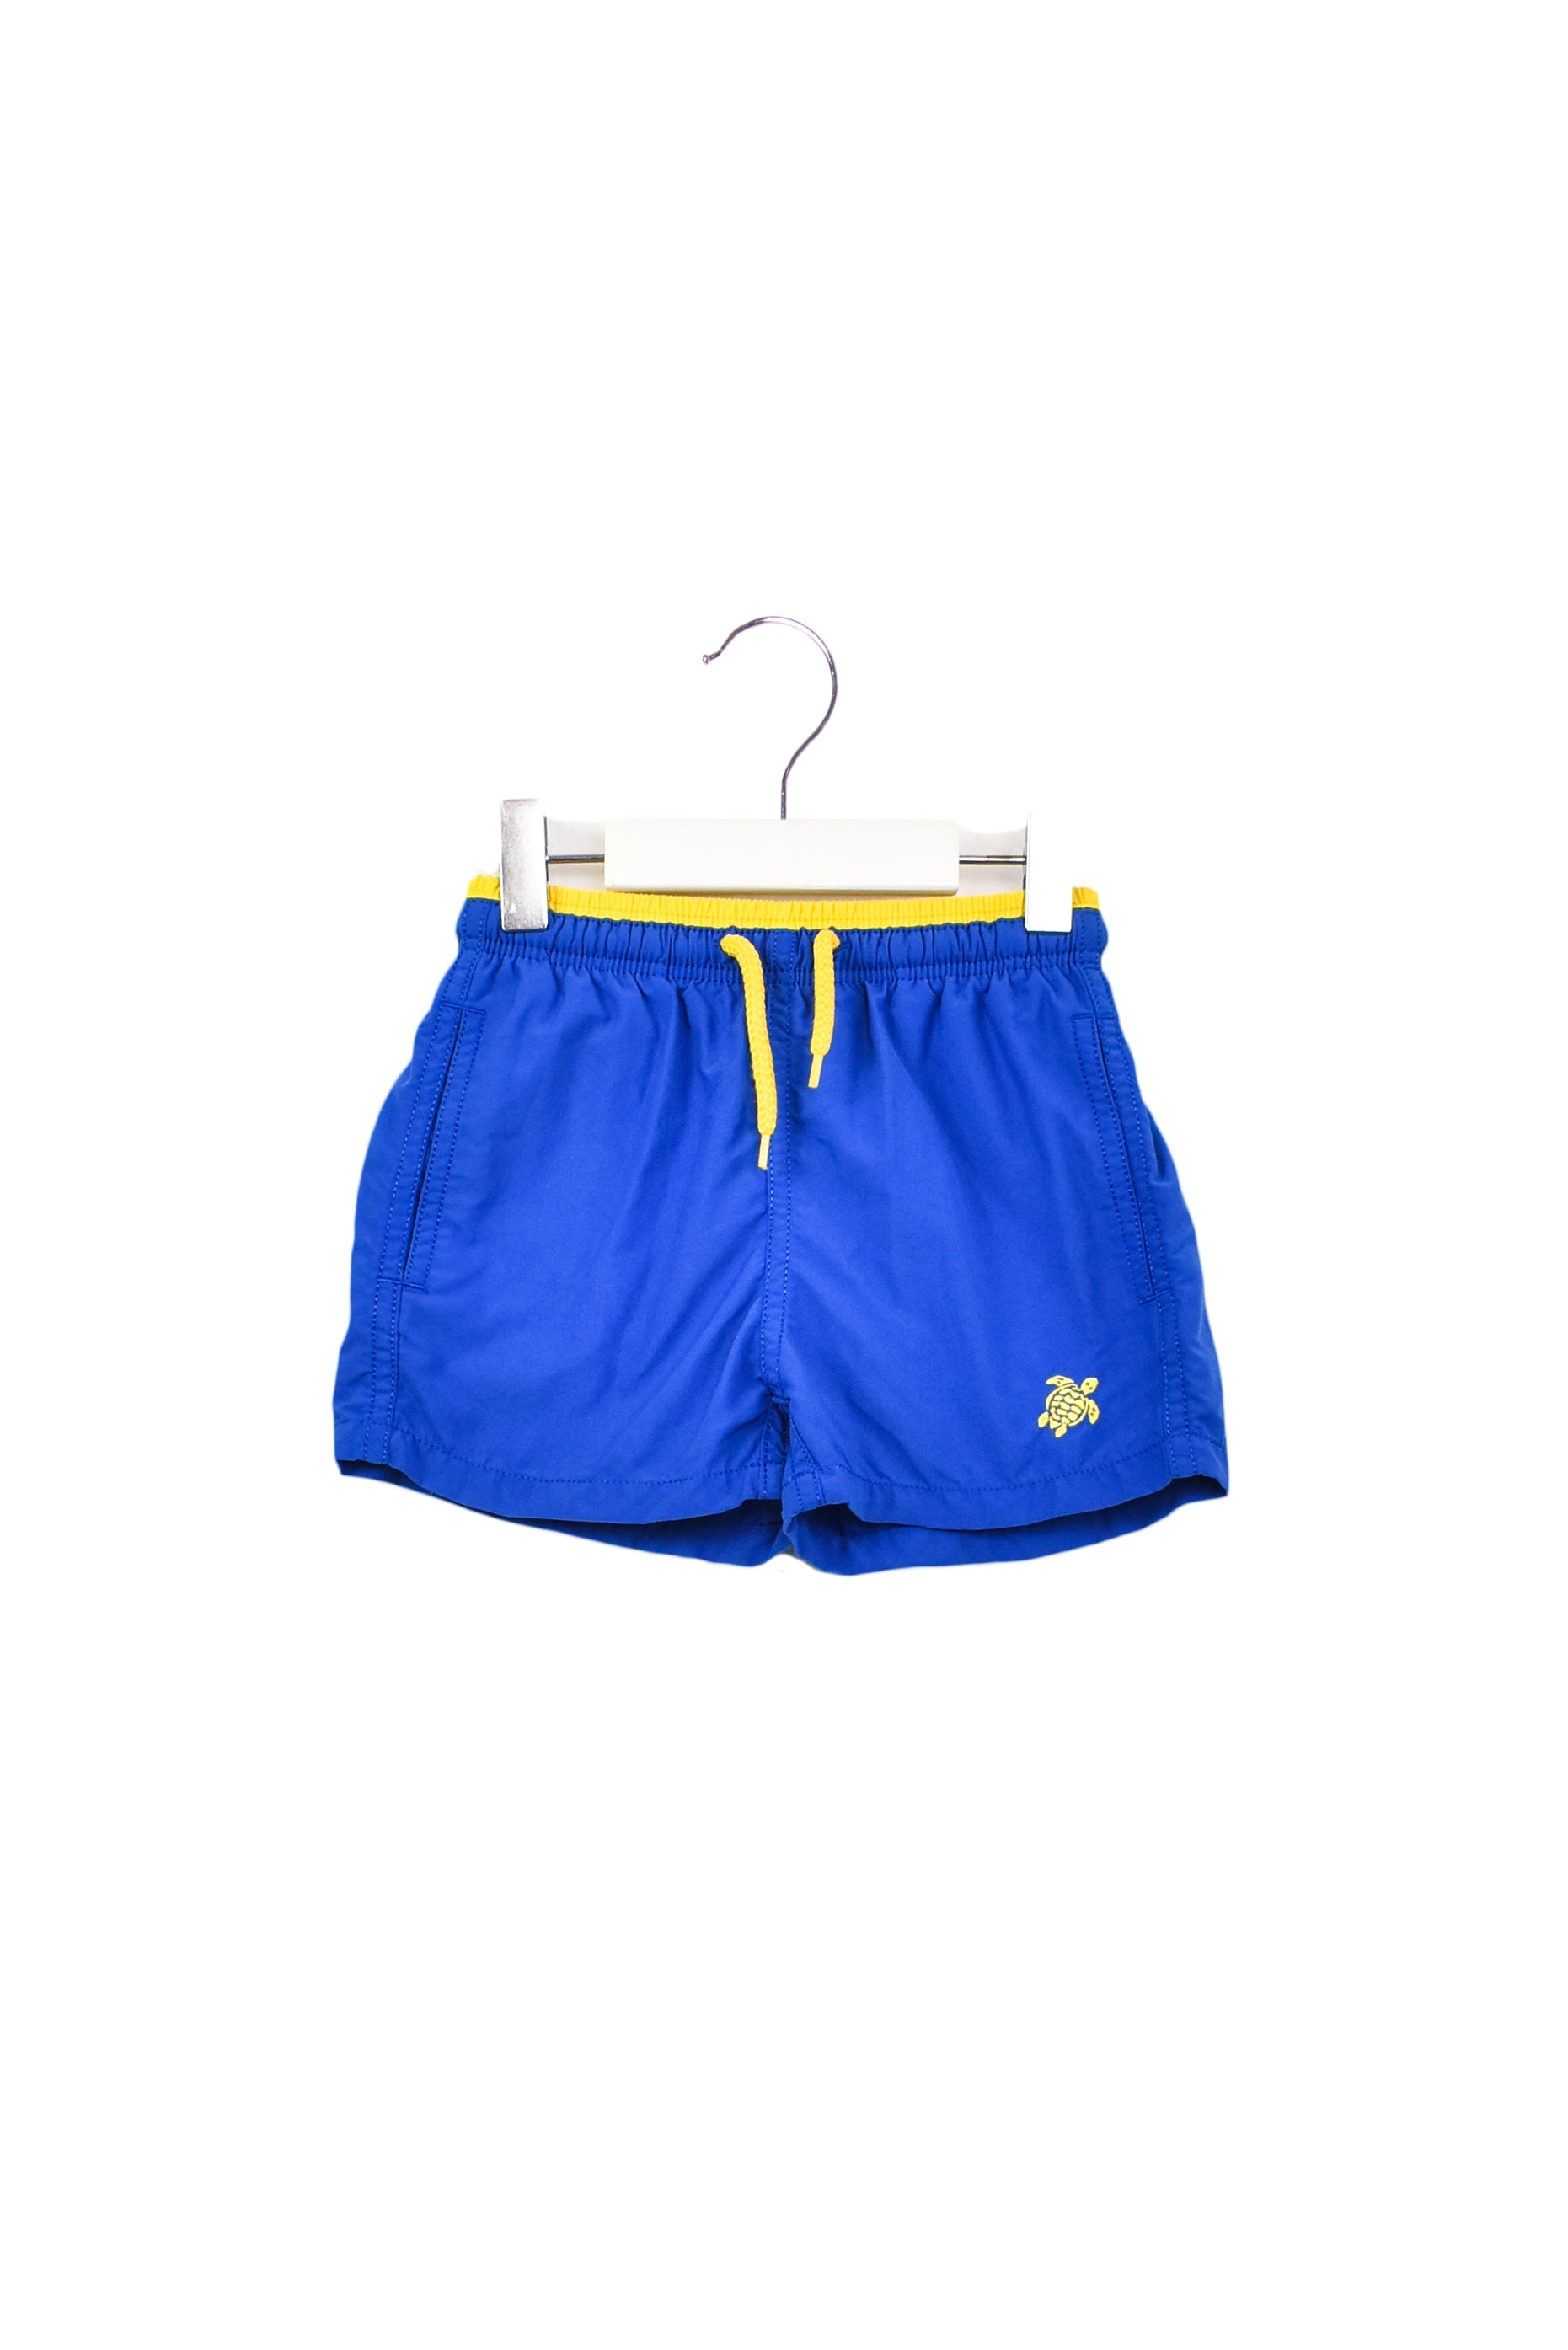 10013550 Vilebrequin Kids ~ Swimwear 4T at Retykle